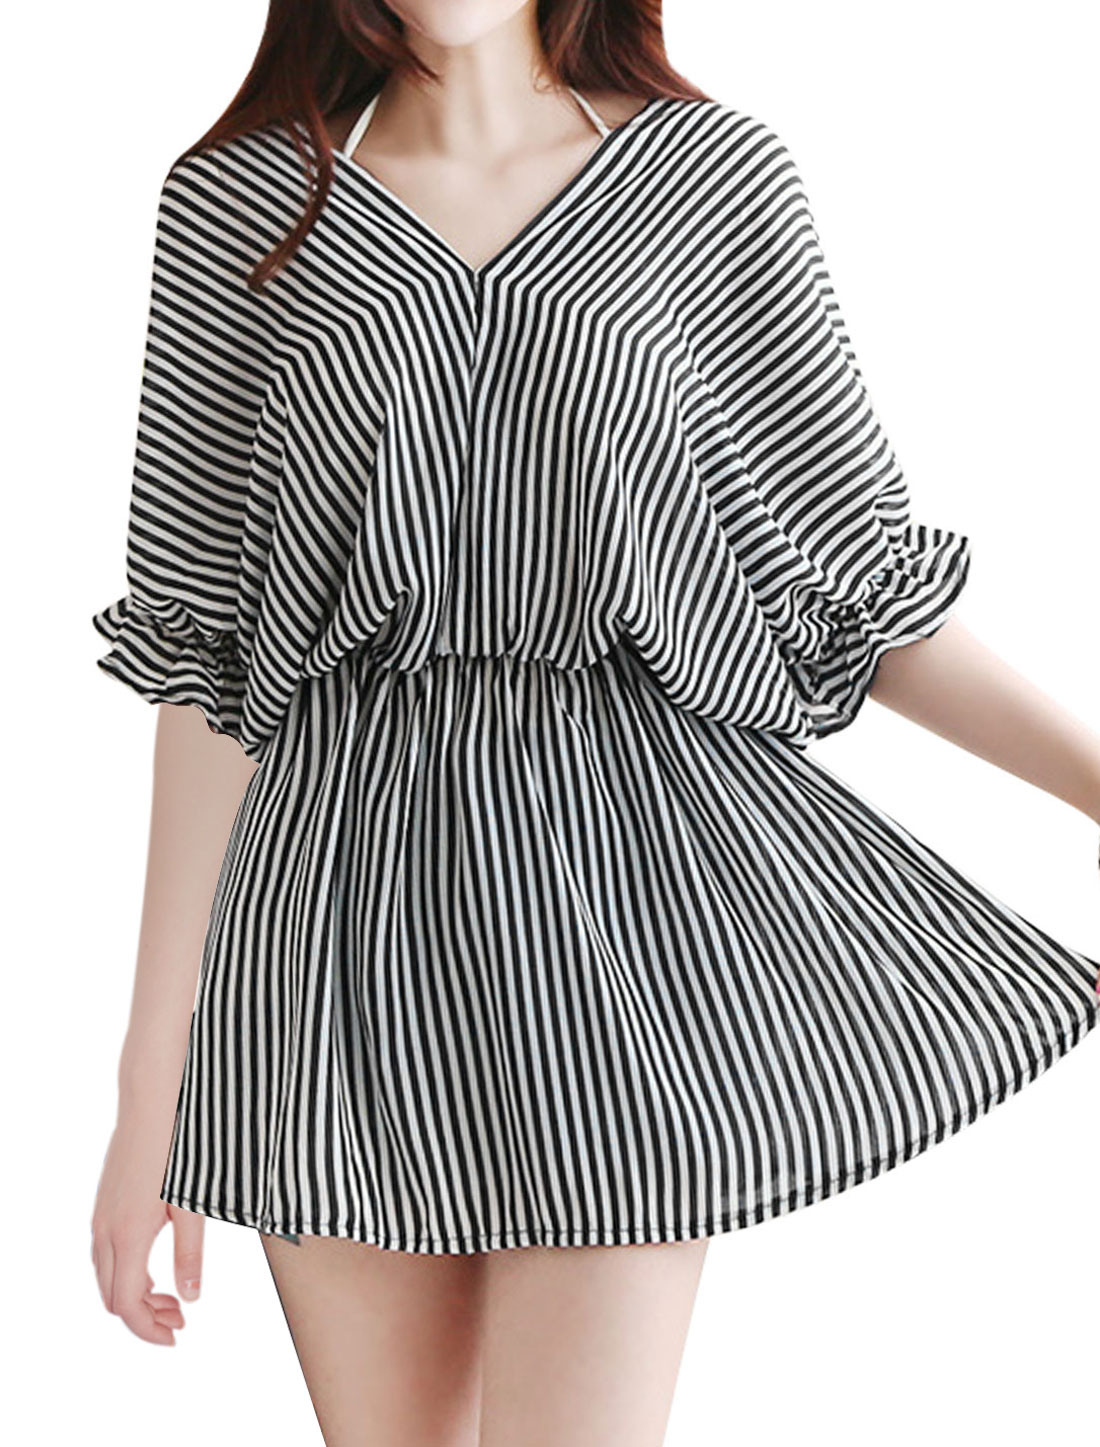 Women V Neck Vertical Stripes Elbow Batwing Sleeves Tunic Dress Black White S